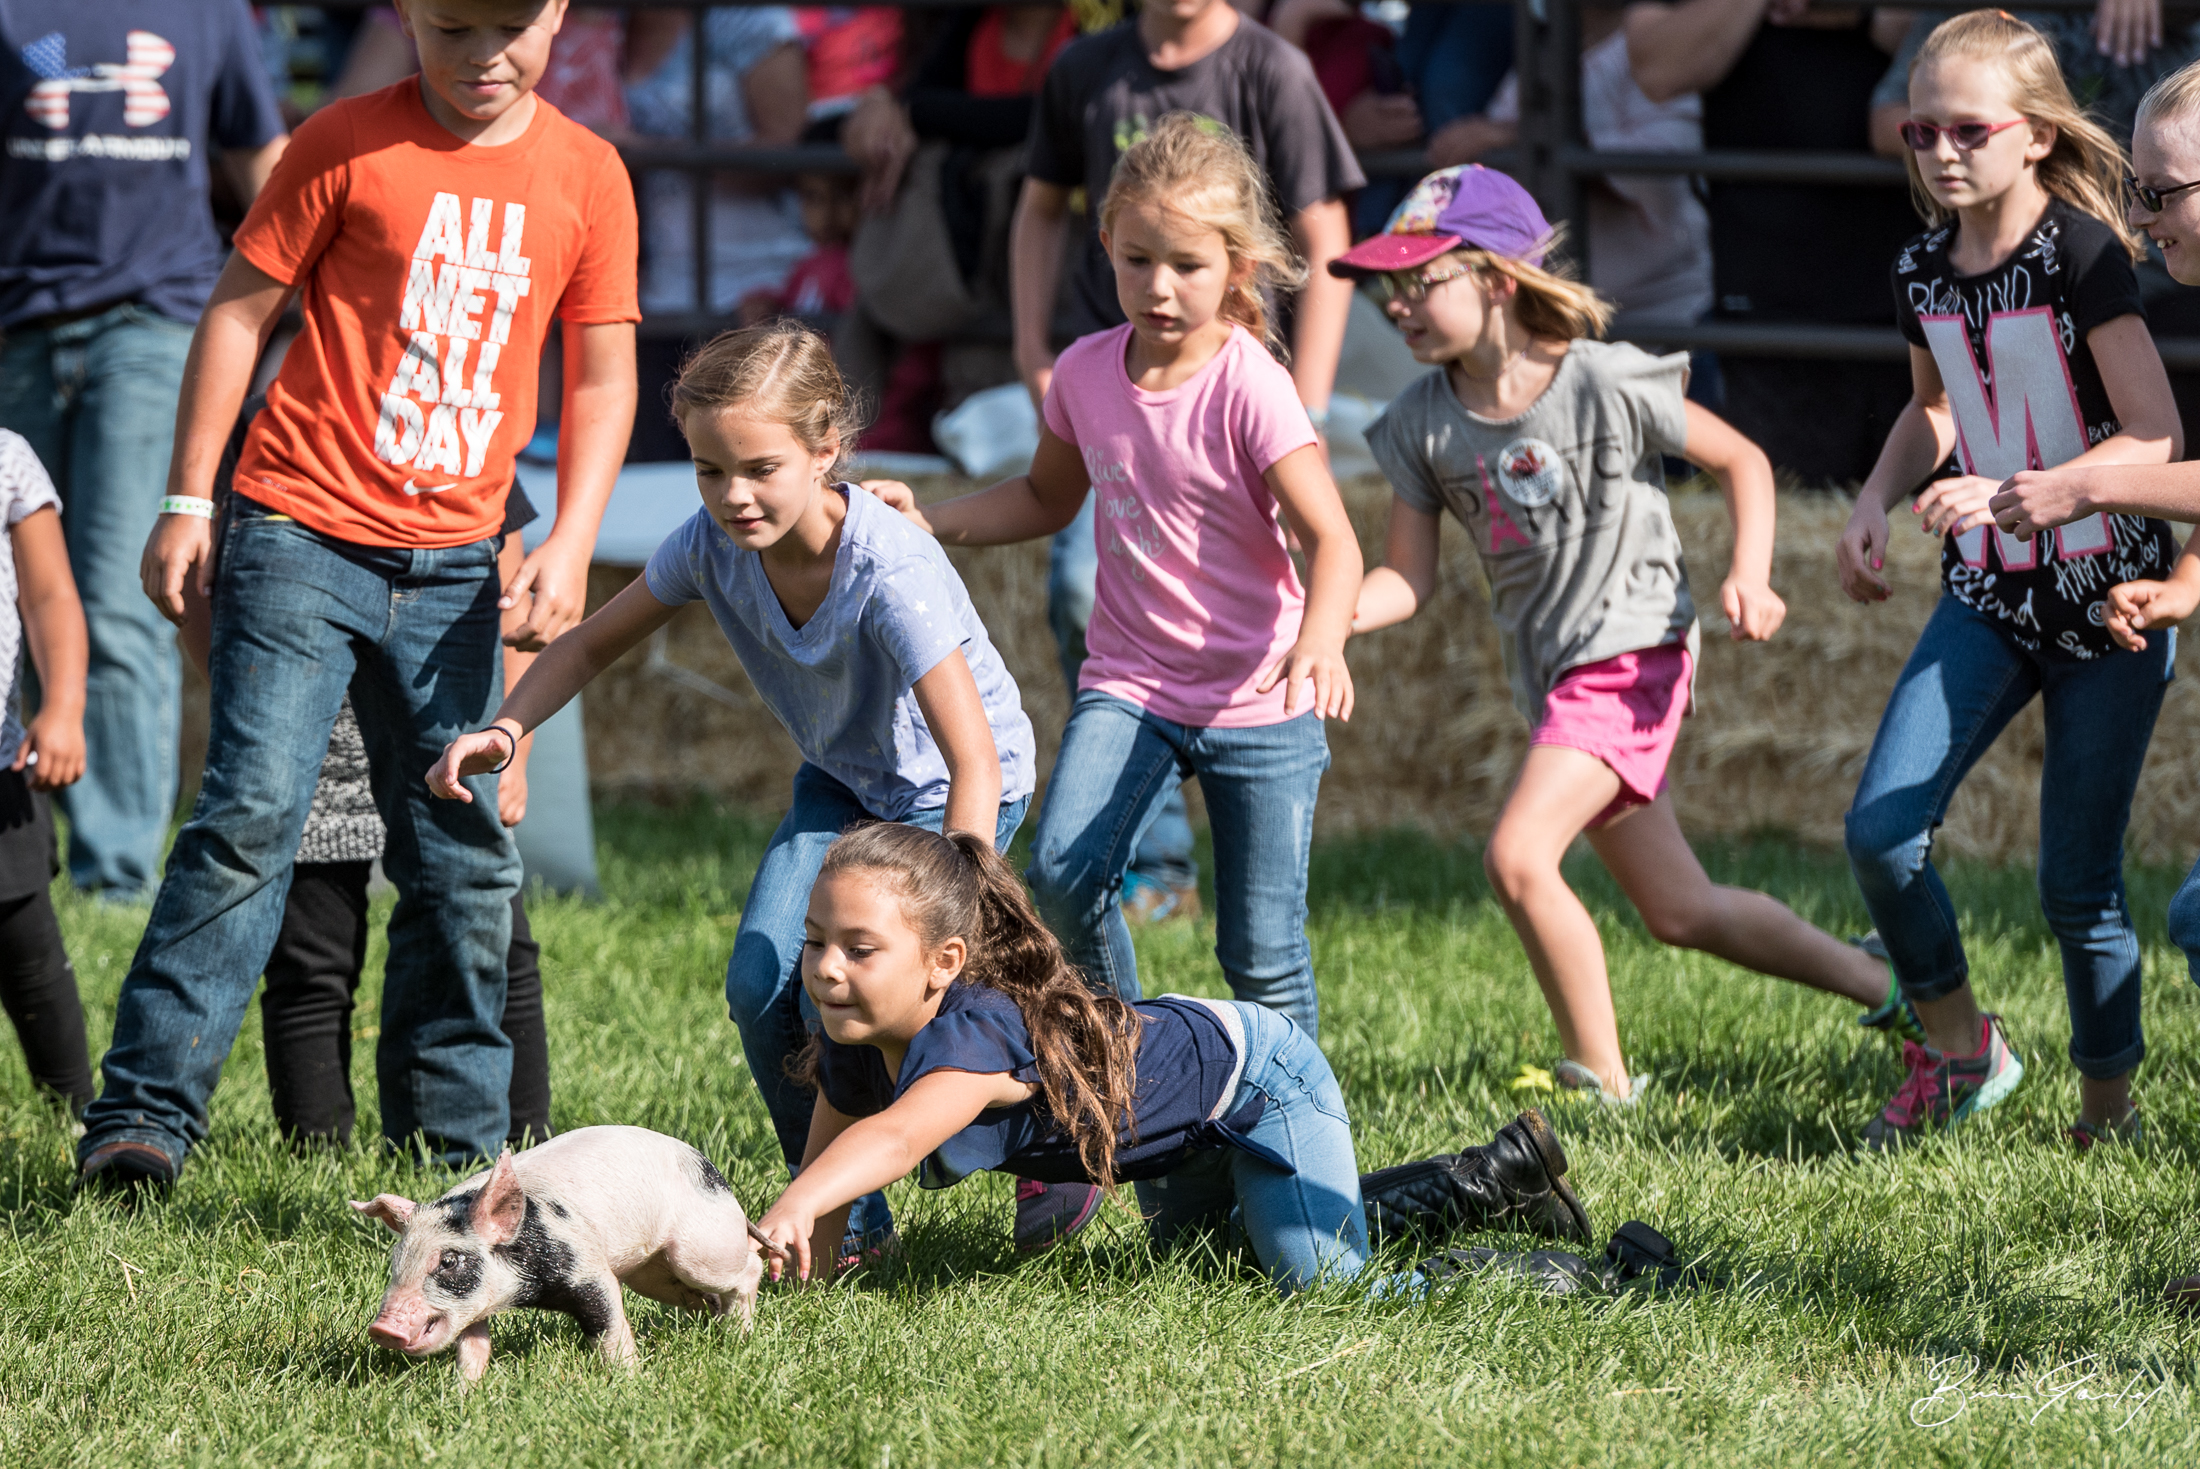 The Pig Scramble is an annual tradition at the fair. This little pigglets are just a few weeks old. They get all slicked up and children chase after them, if you catch it you keep it. In most cases, these little fella become raised like a pet rather than livestock. Some might even be shown at next years fair.  Image:  Brian Gailey  Tulelake Butte Valley Fair 2017